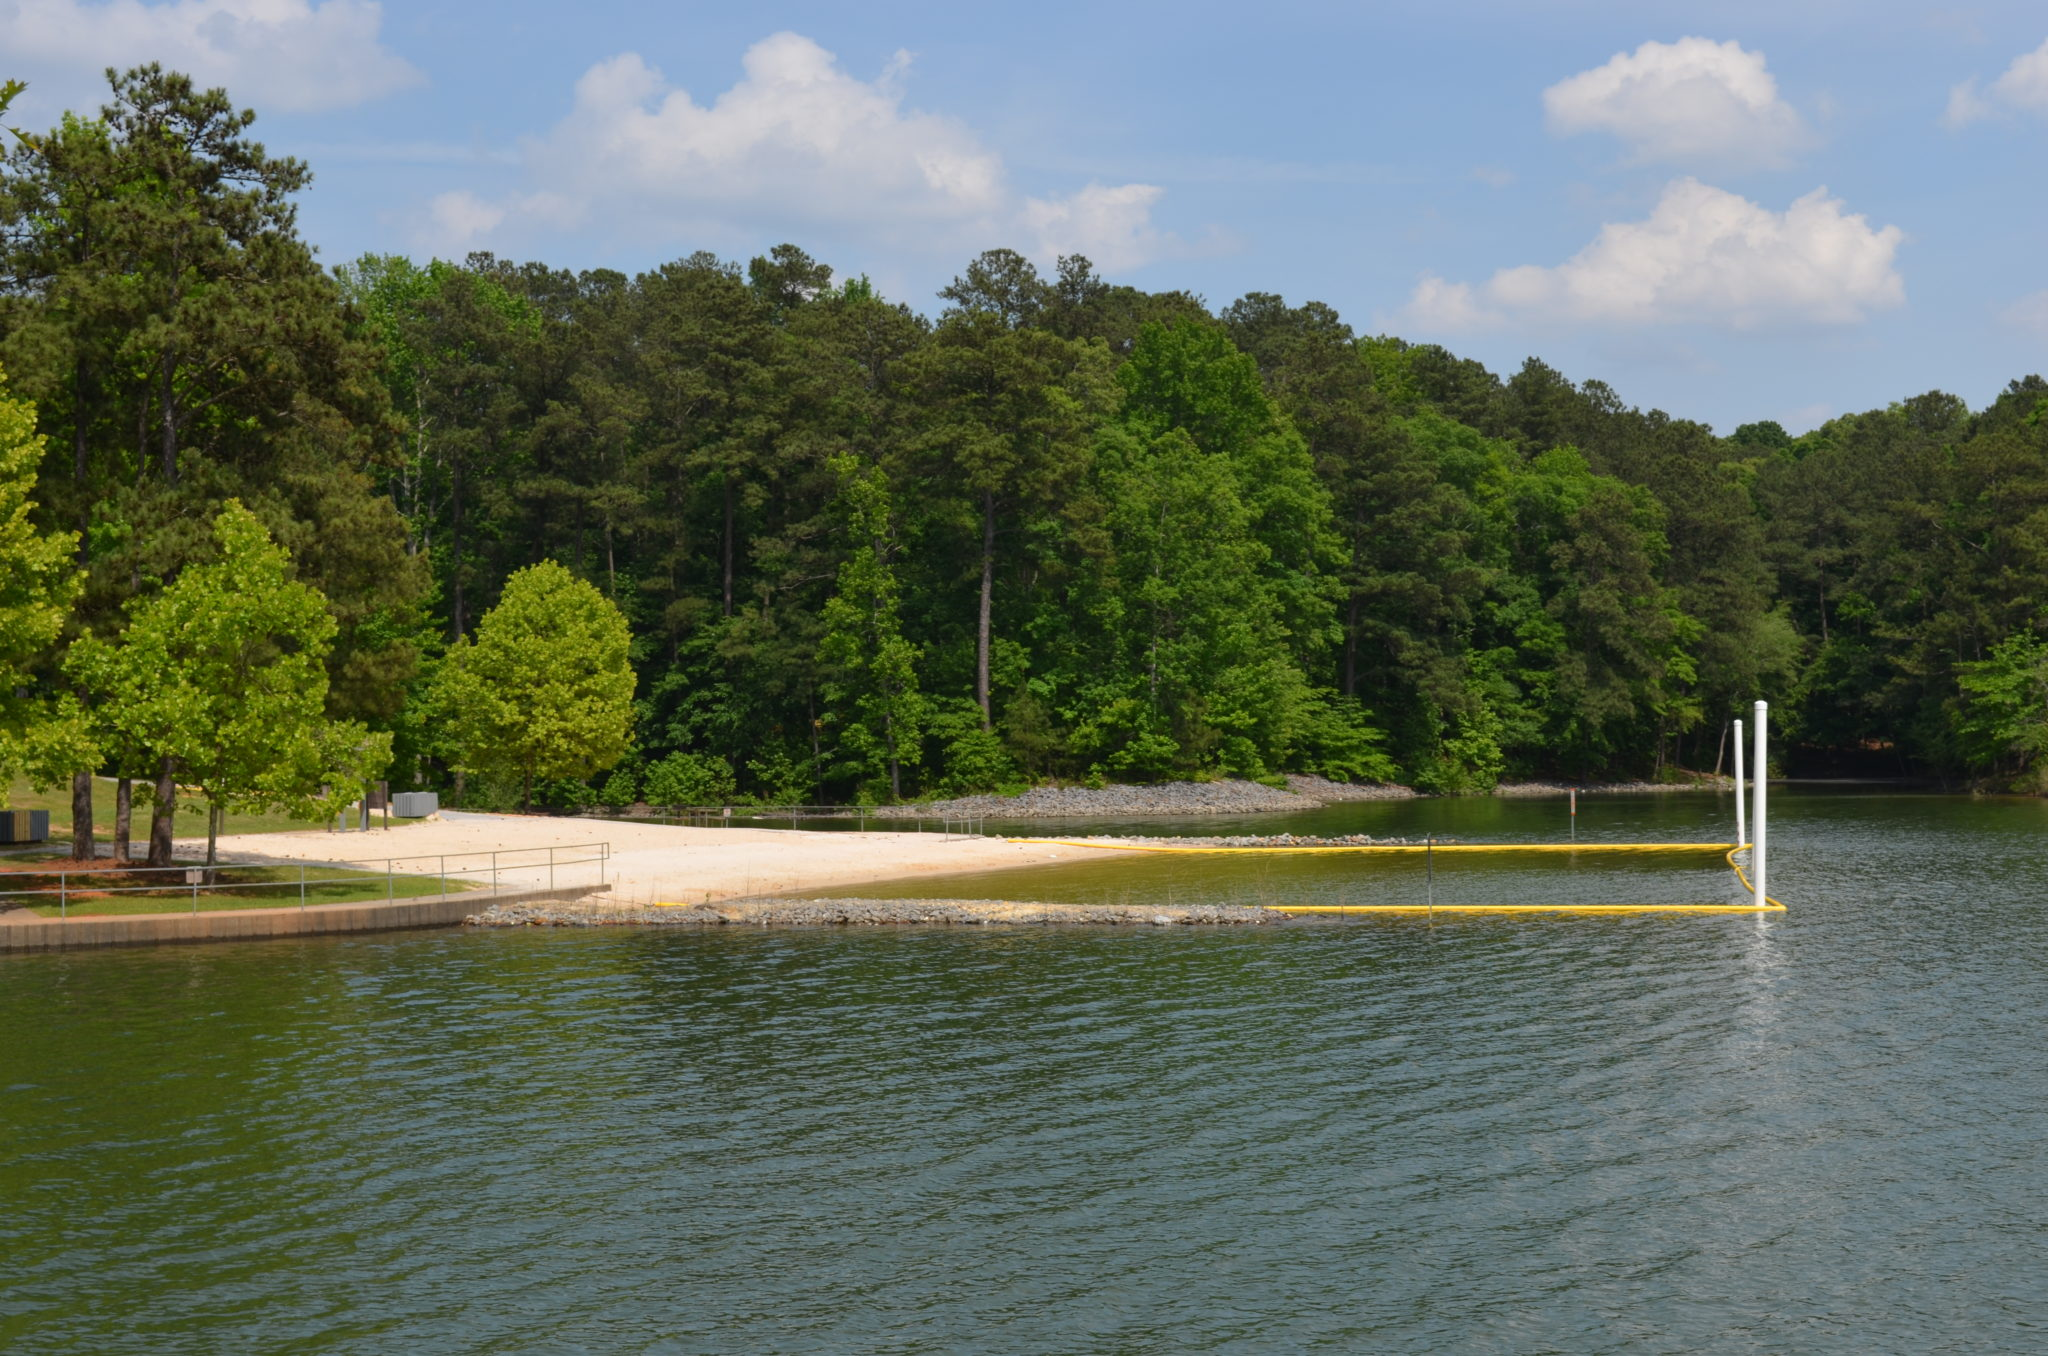 Sweetwater Day Use Area at Lake Allatoona